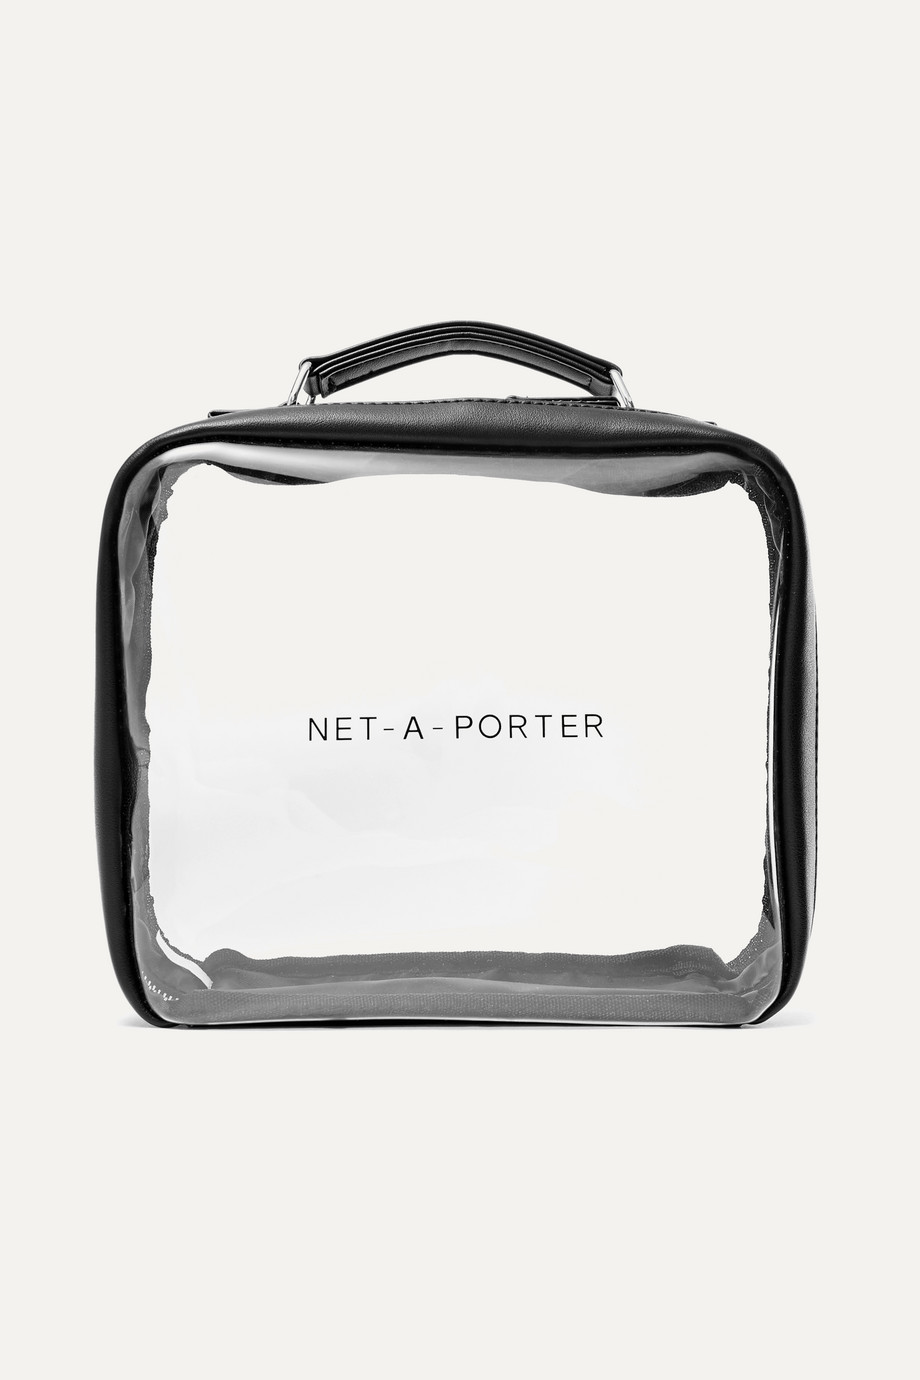 NET-A-PORTER Vegan faux leather-trimmed Perspex cosmetics case